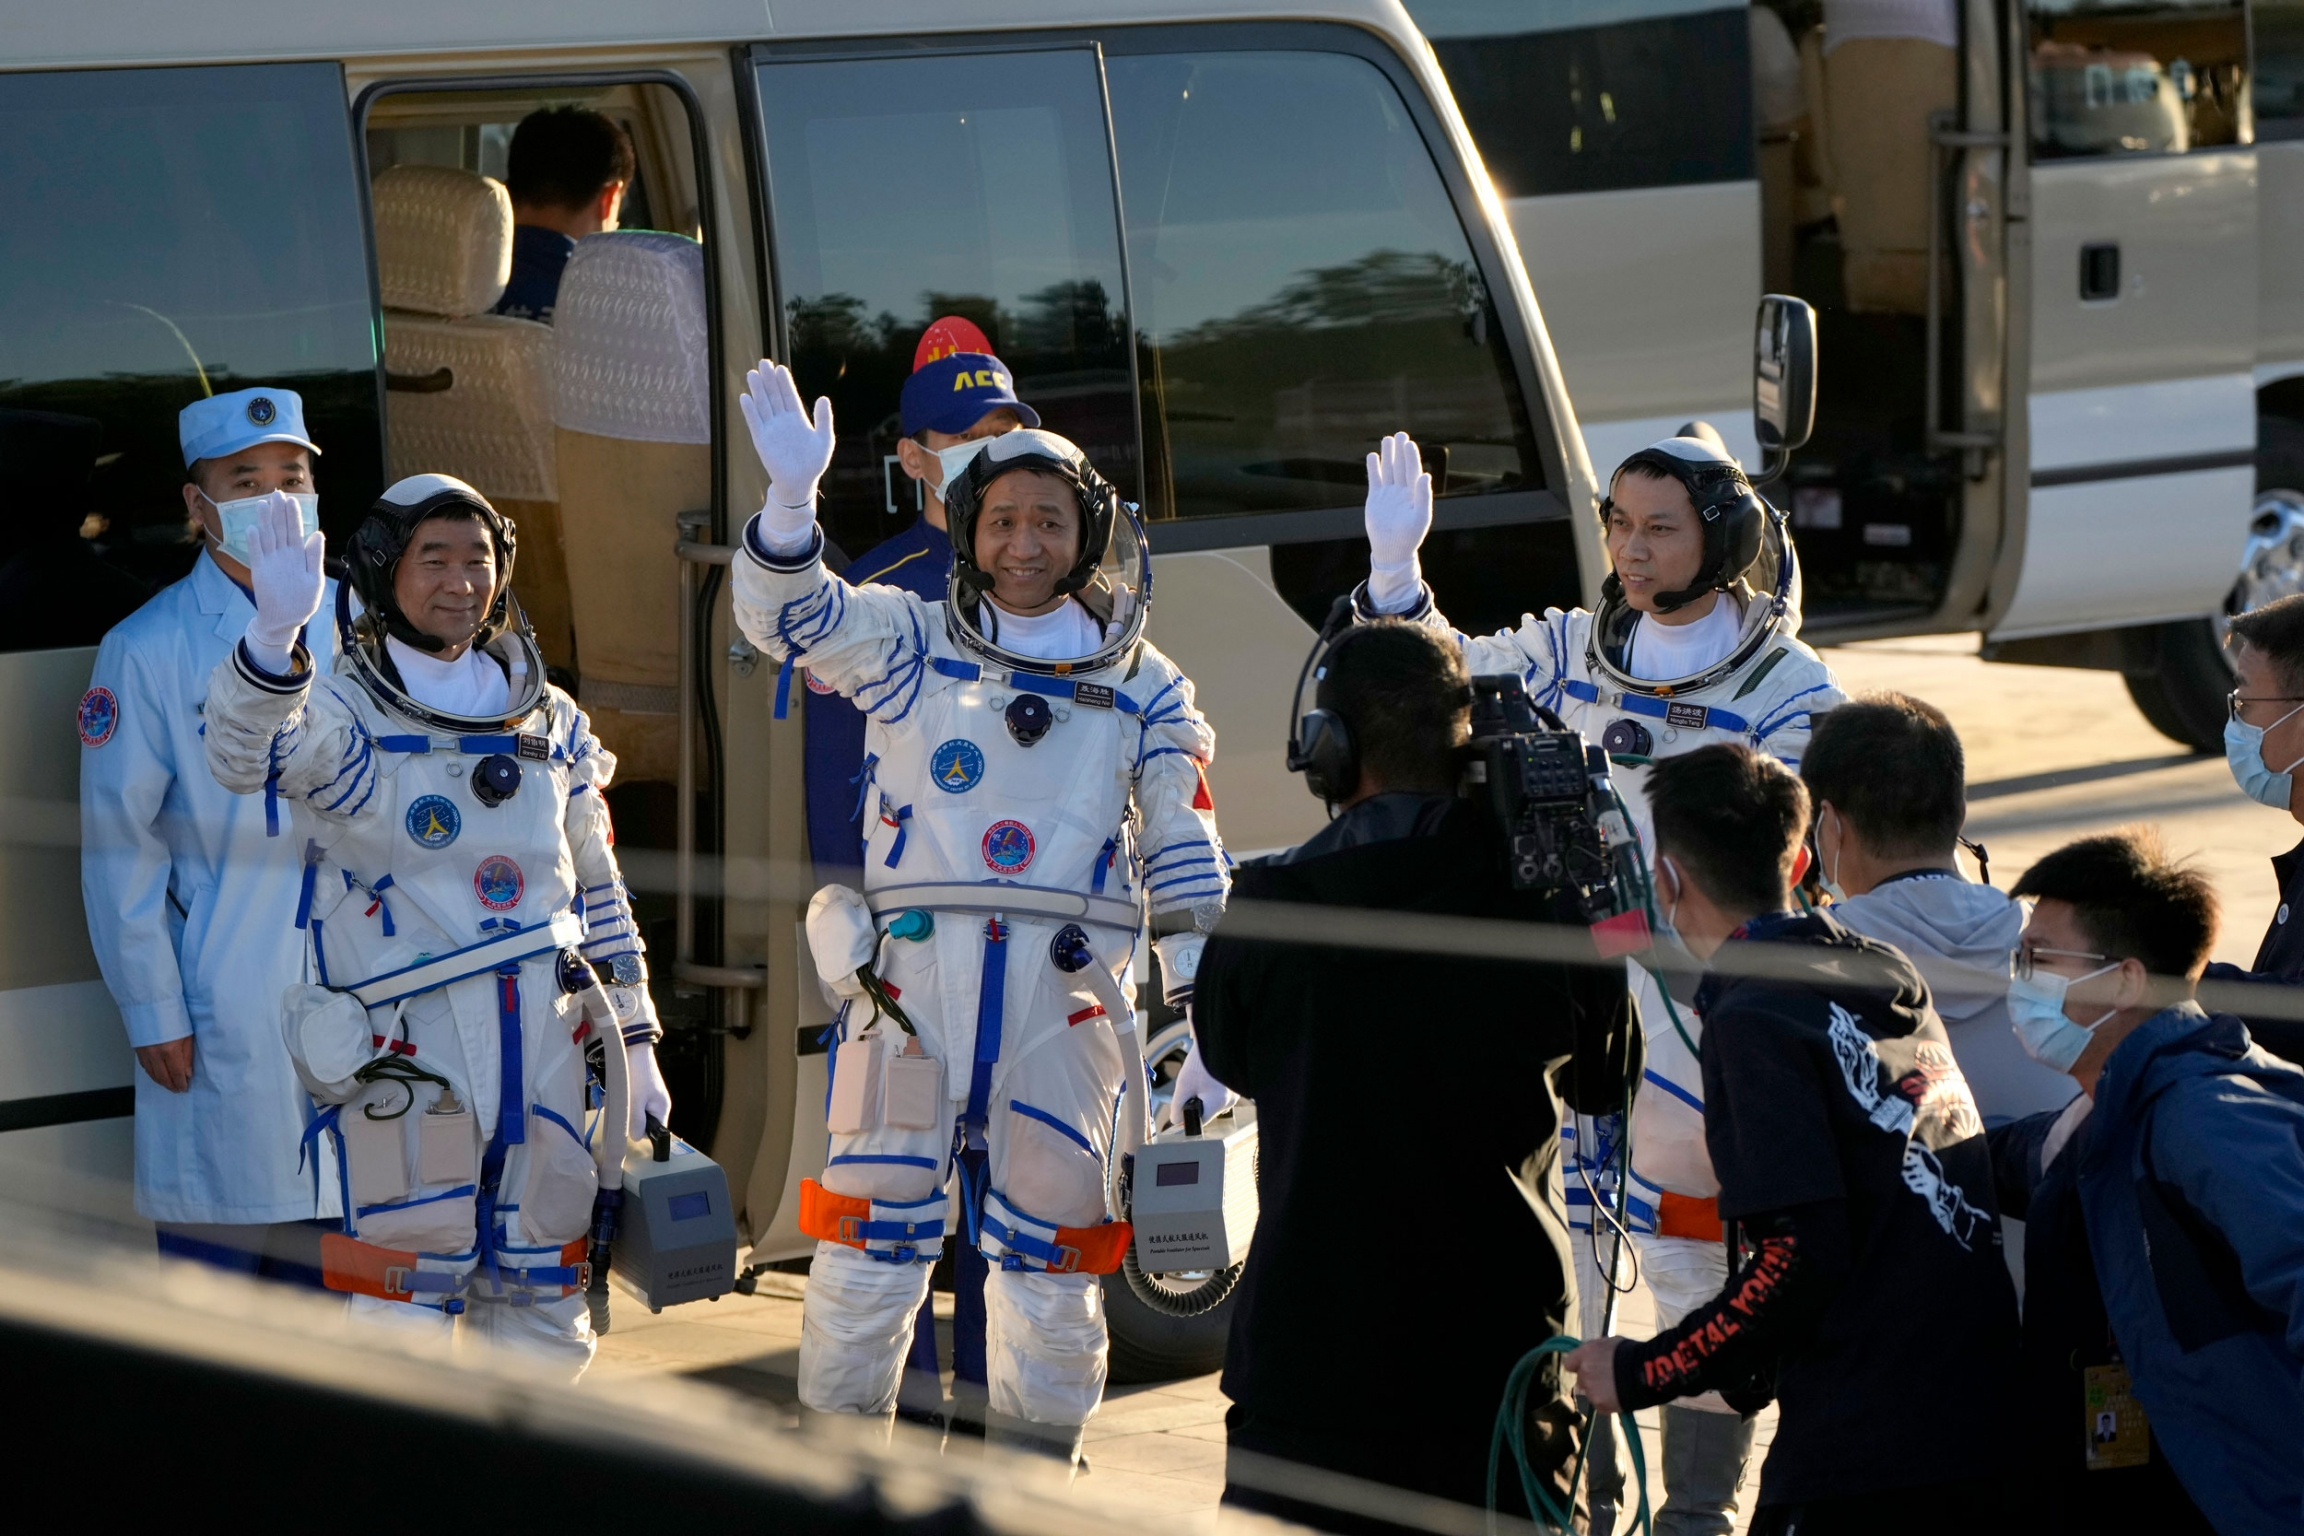 Chinese astronauts are shown wearing white and blue stripped space suits and waiving.